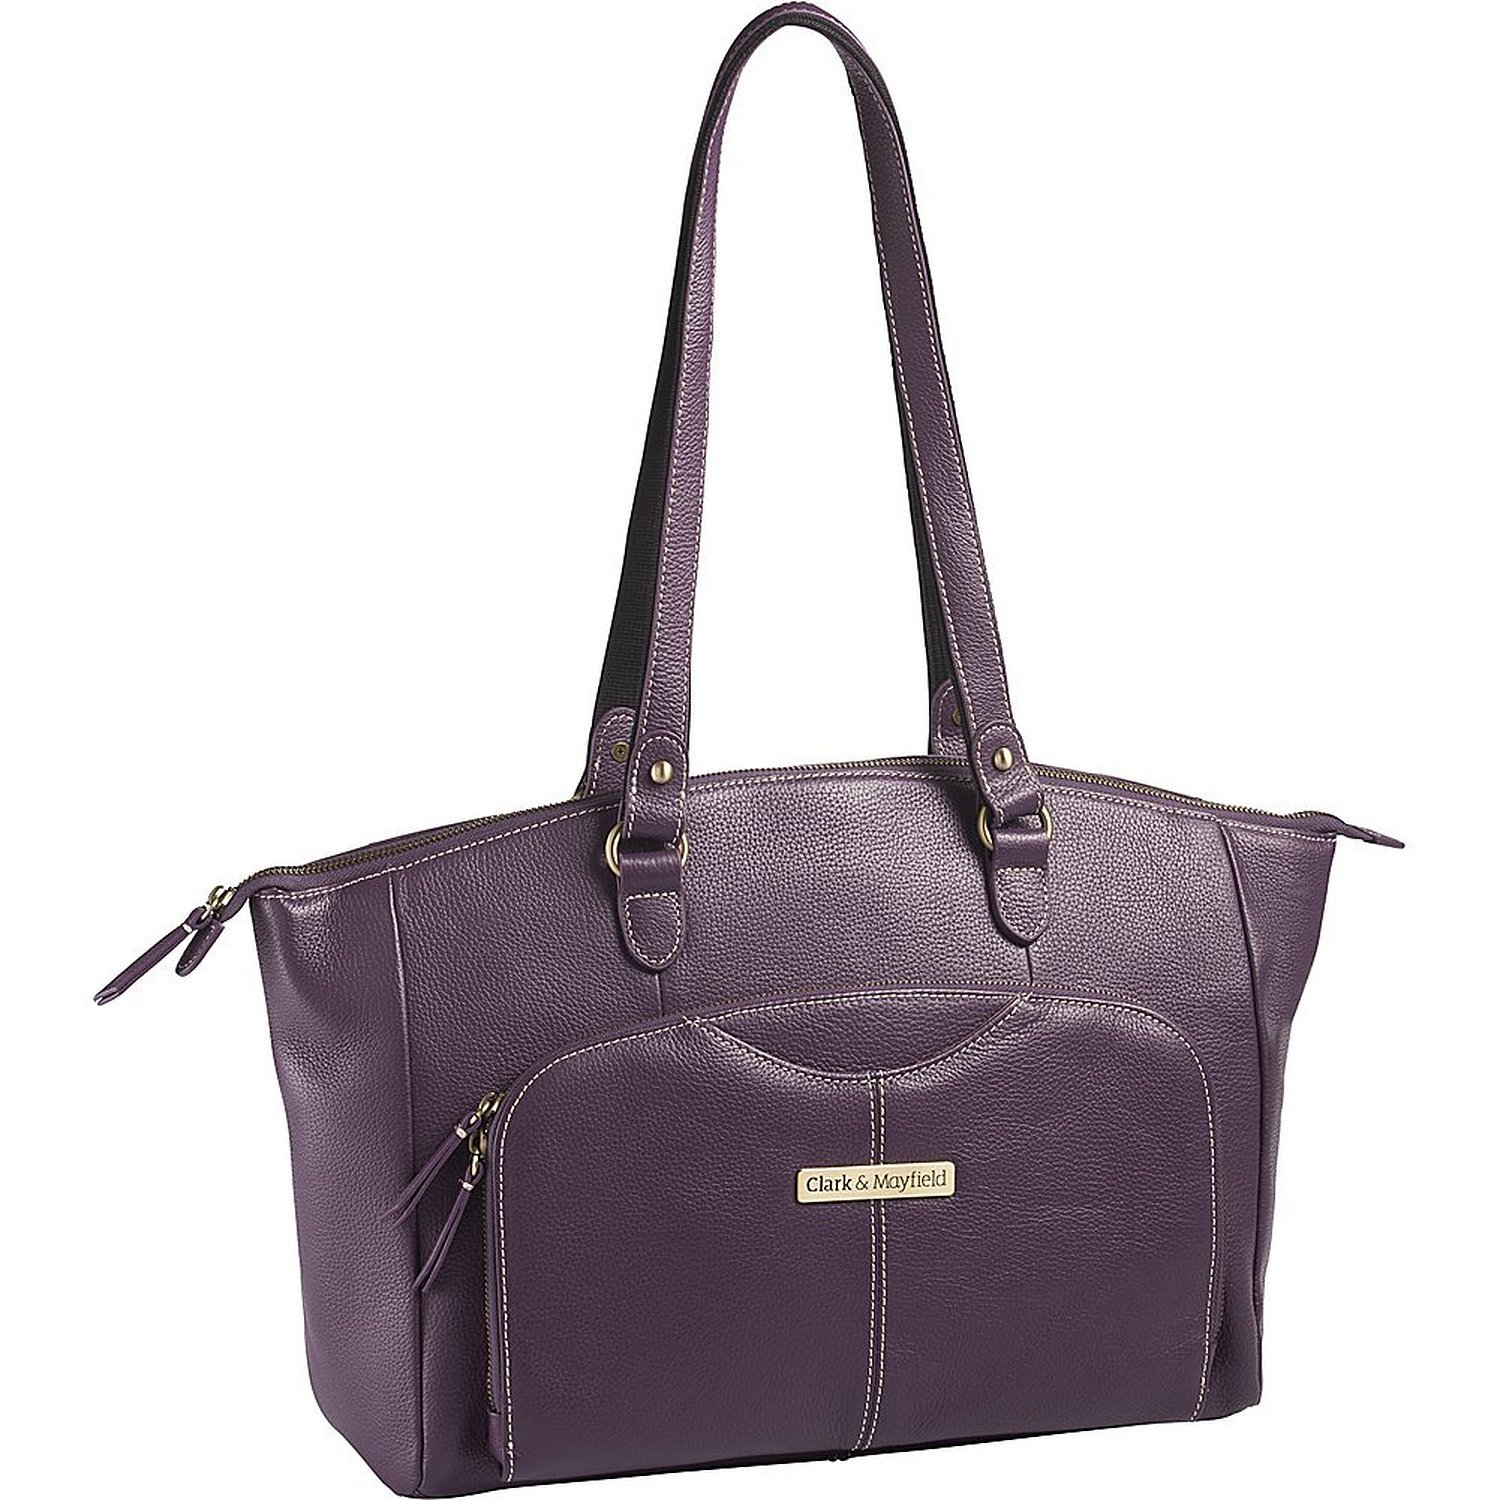 Clark & Mayfield Alder Leather 15.6 '' Laptop Handbag (Purple) by Clark & Mayfield (Image #1)